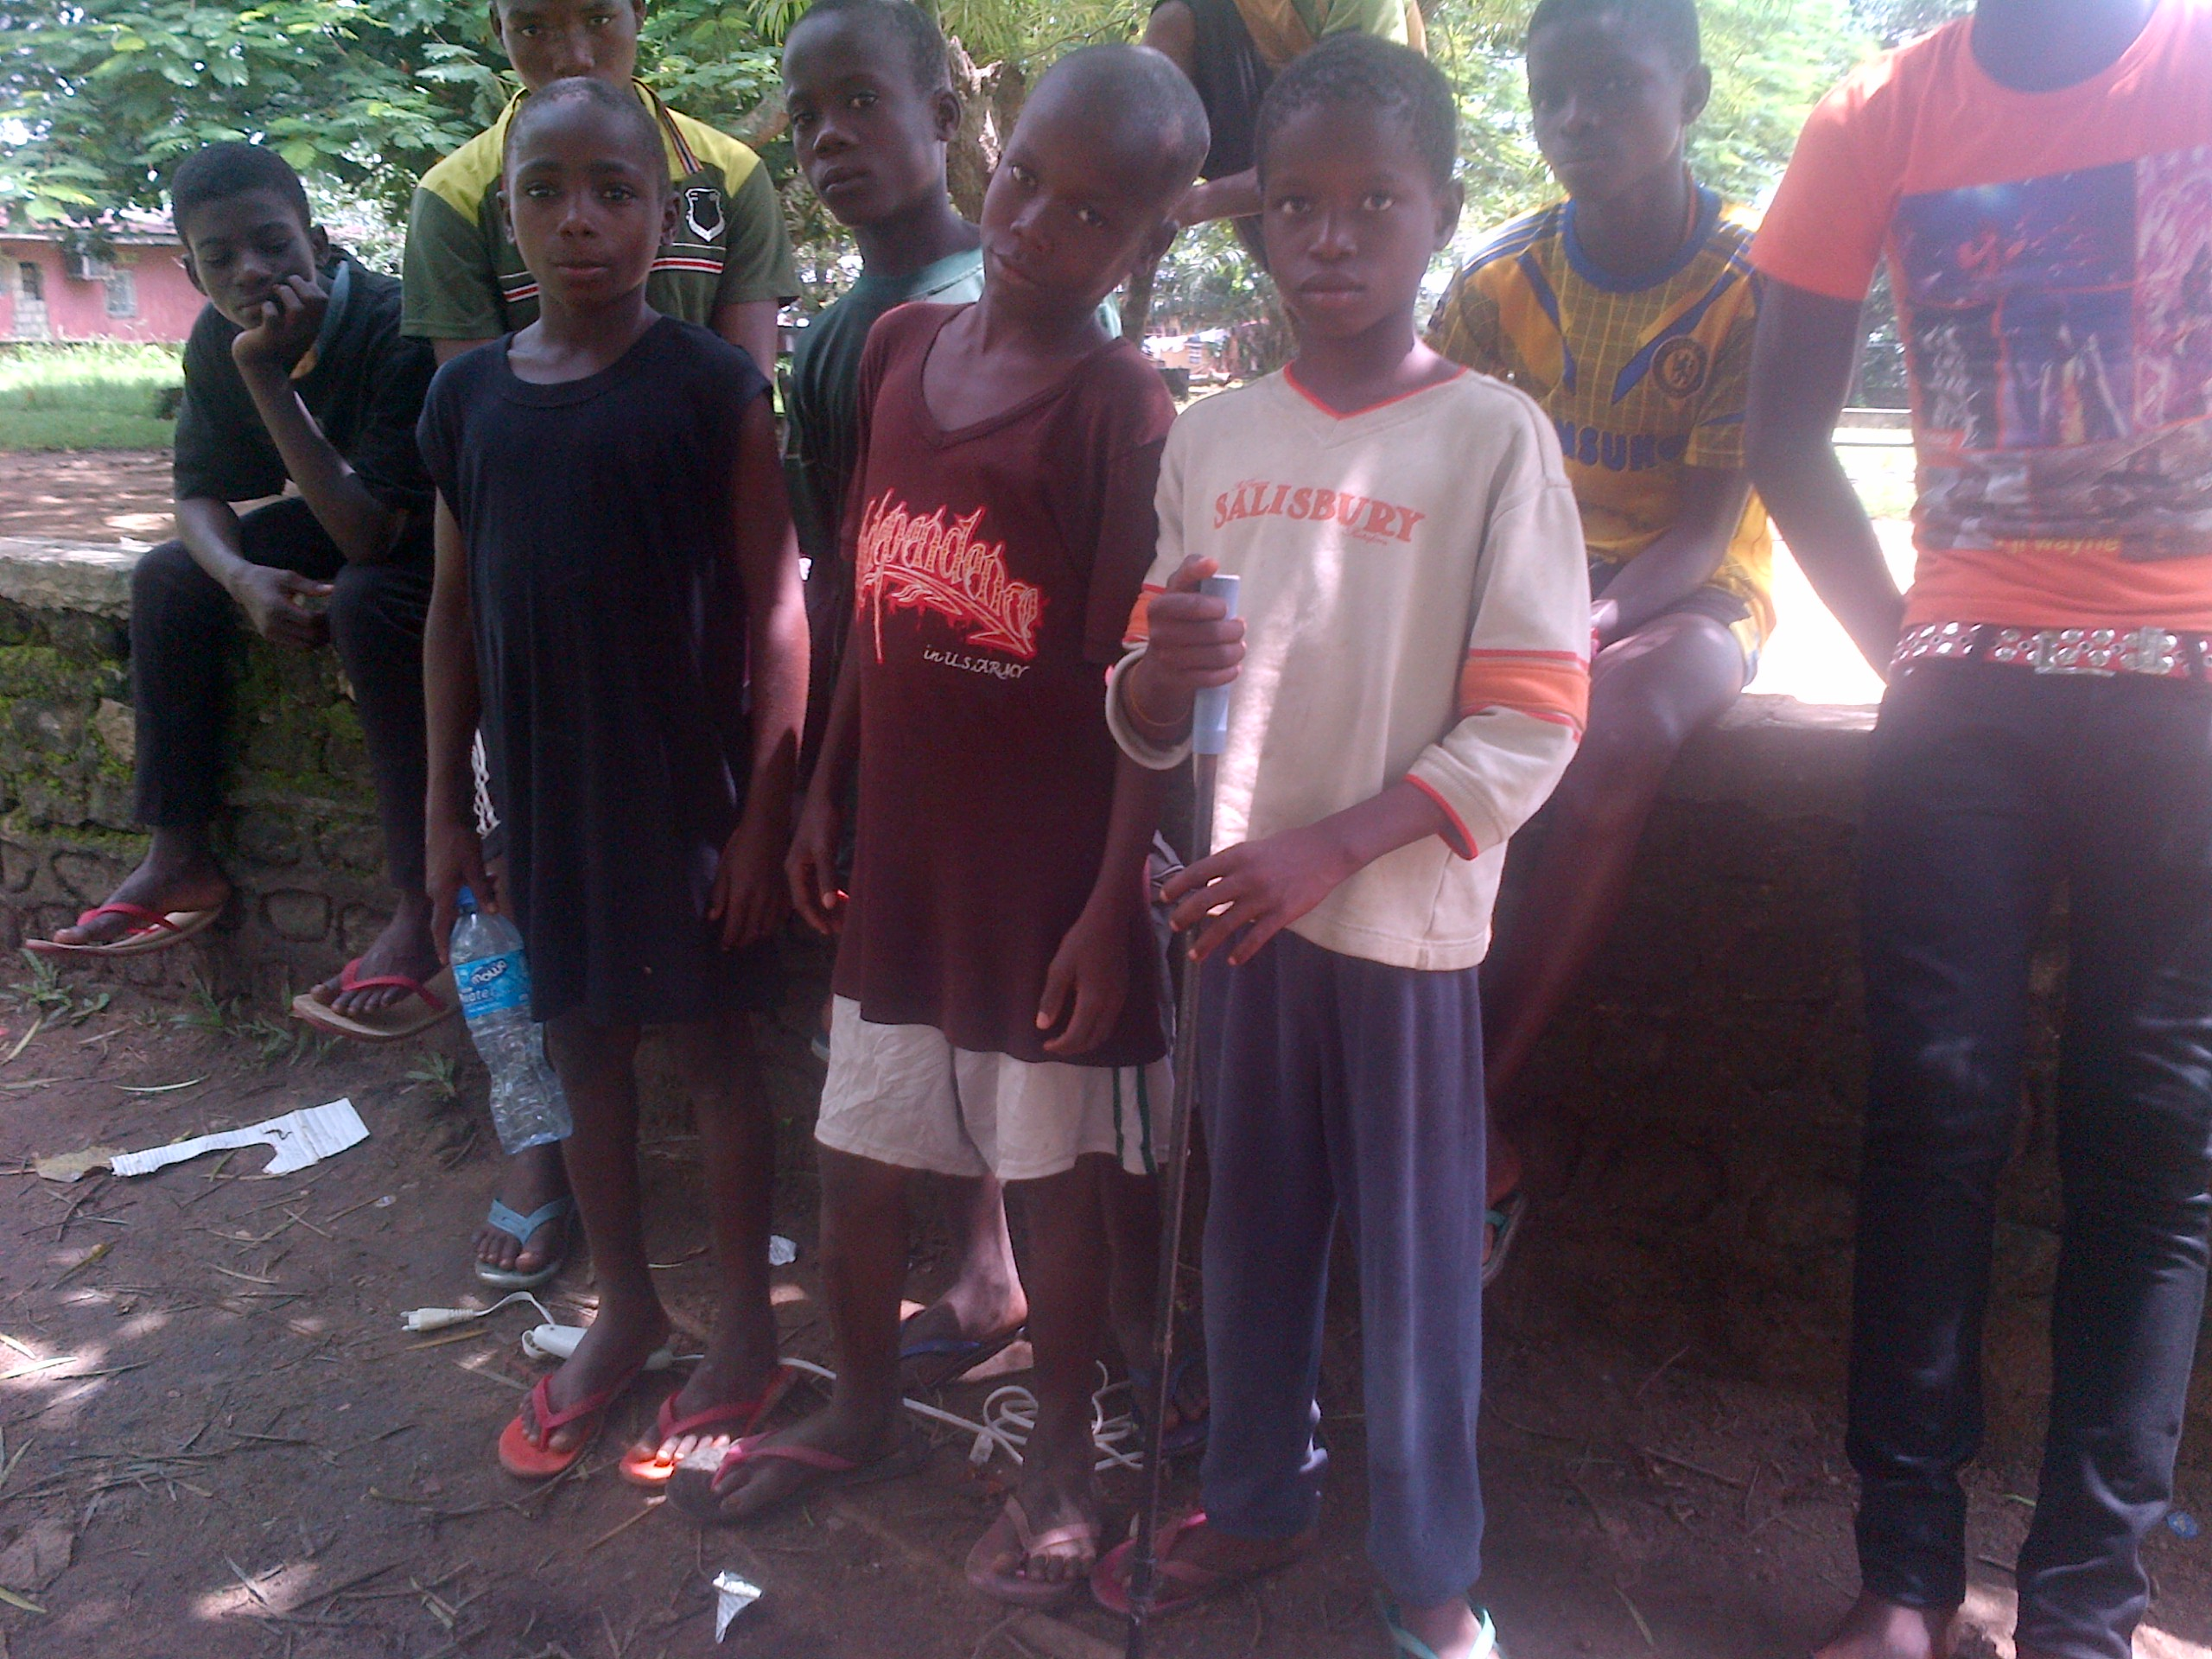 Abandoned children on the streets of Calabar